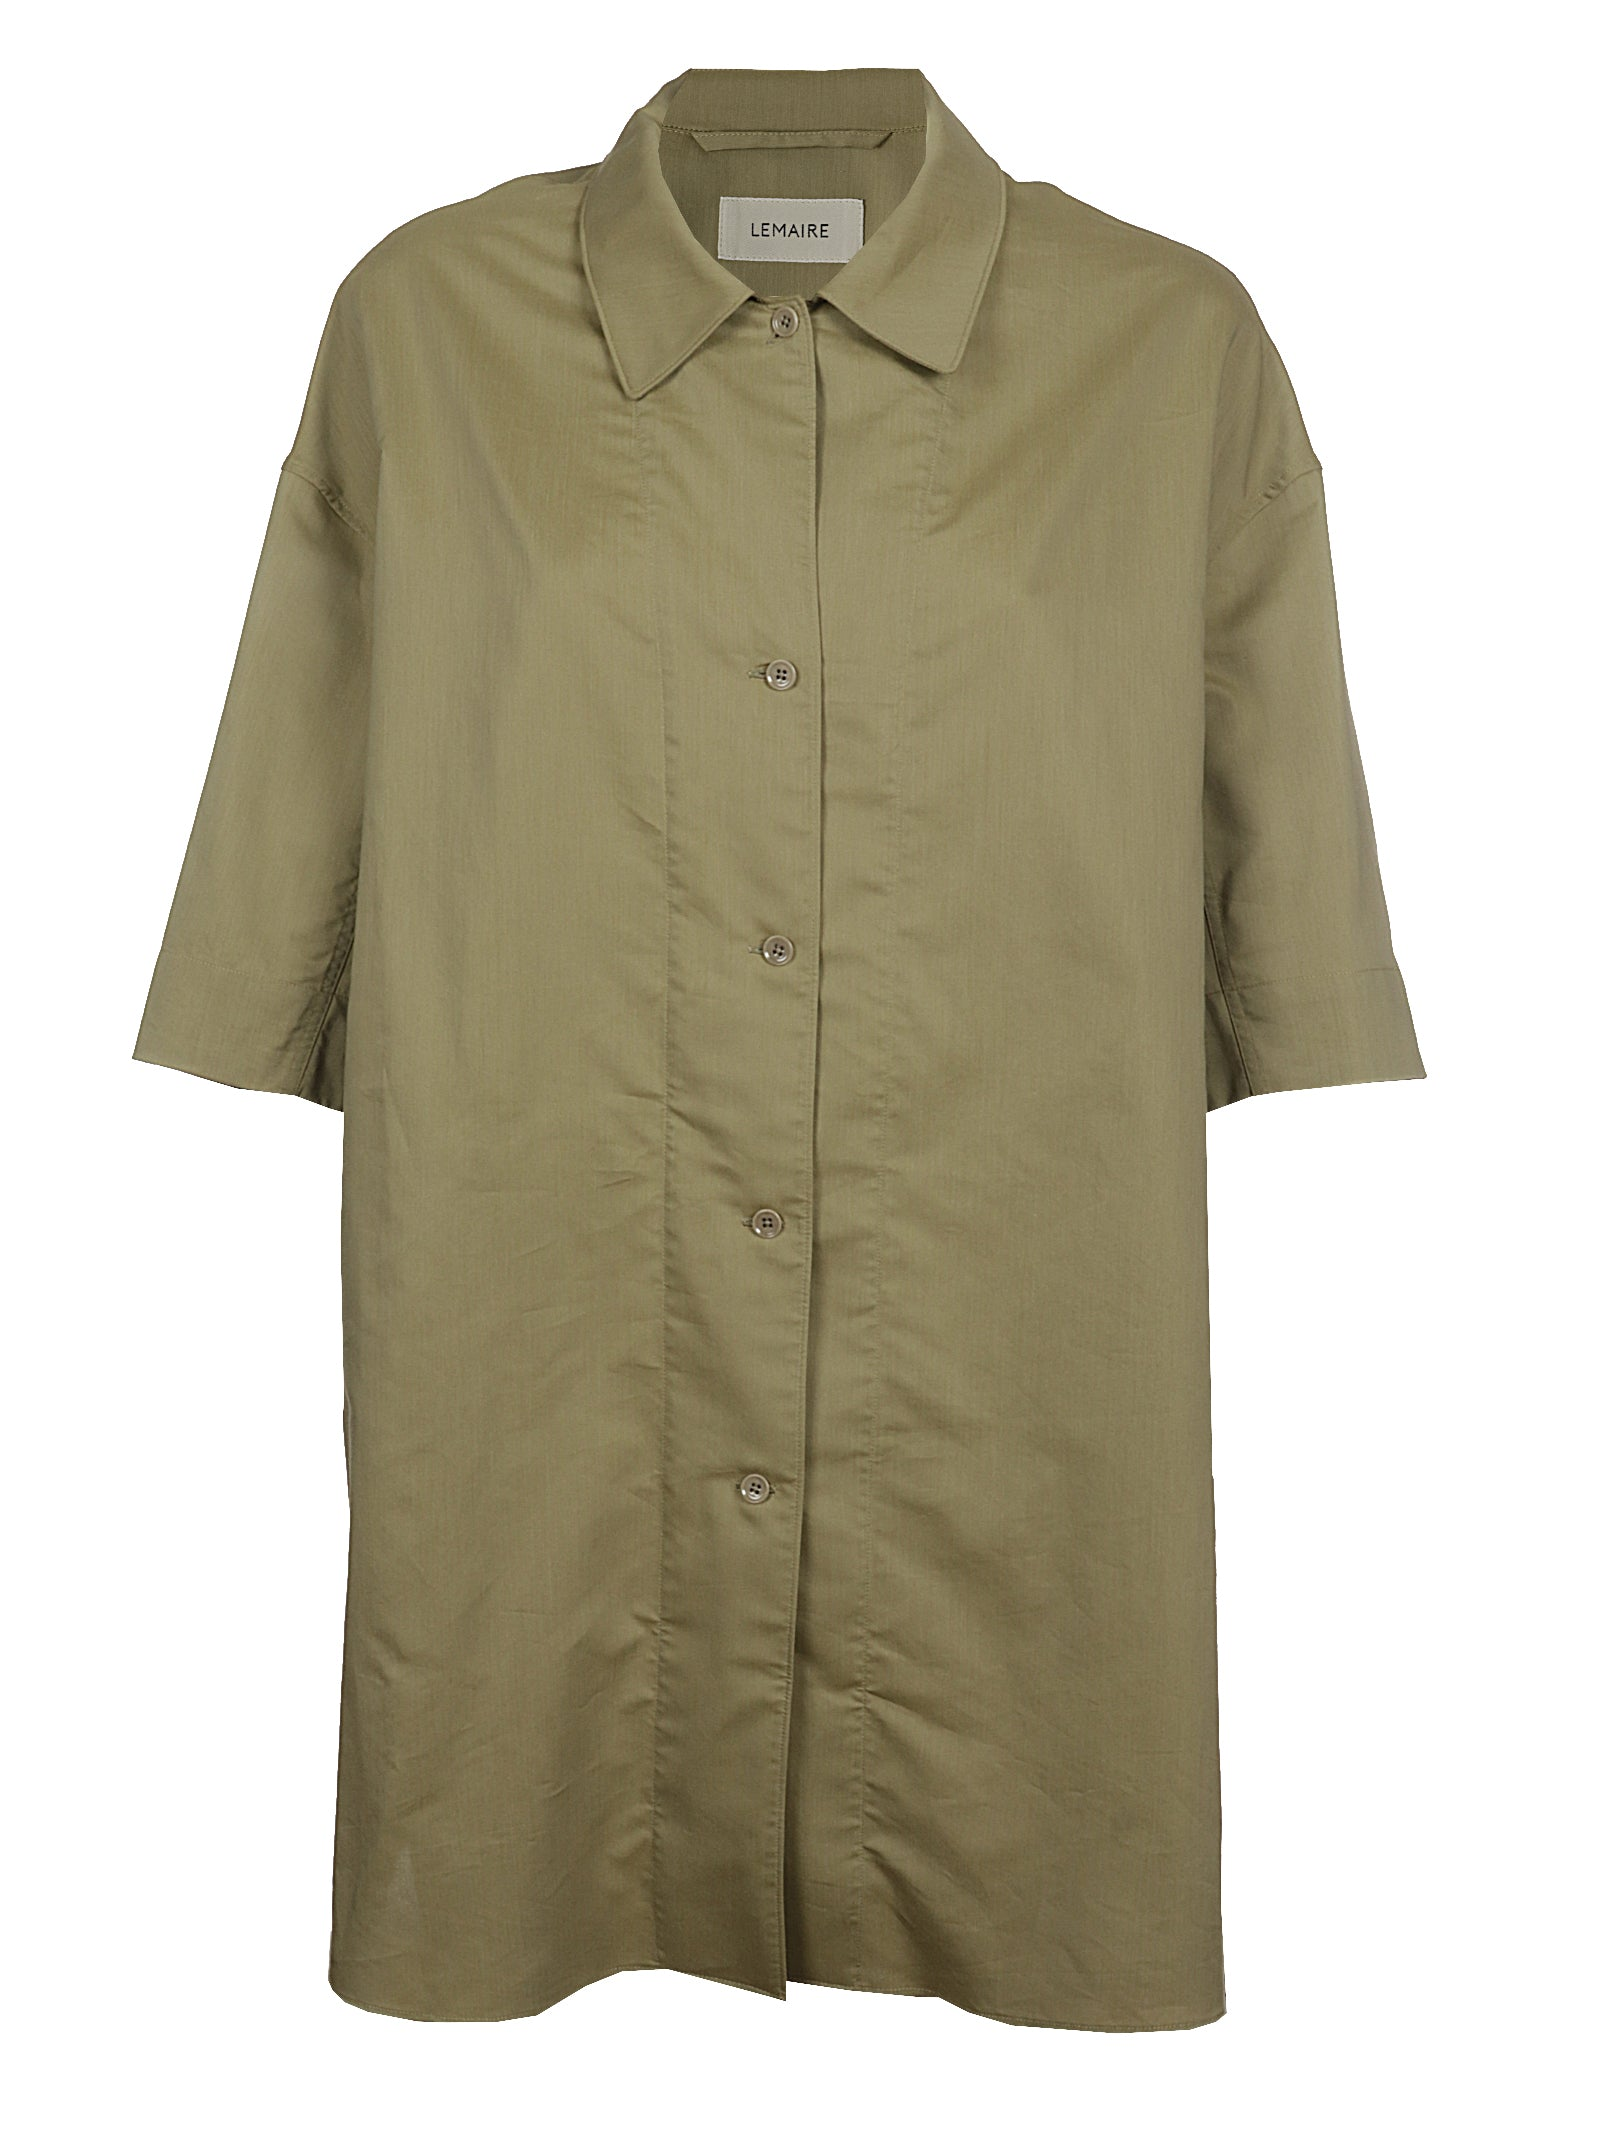 Lemaire Silks LEMAIRE TWISTED MAXI SHIRT